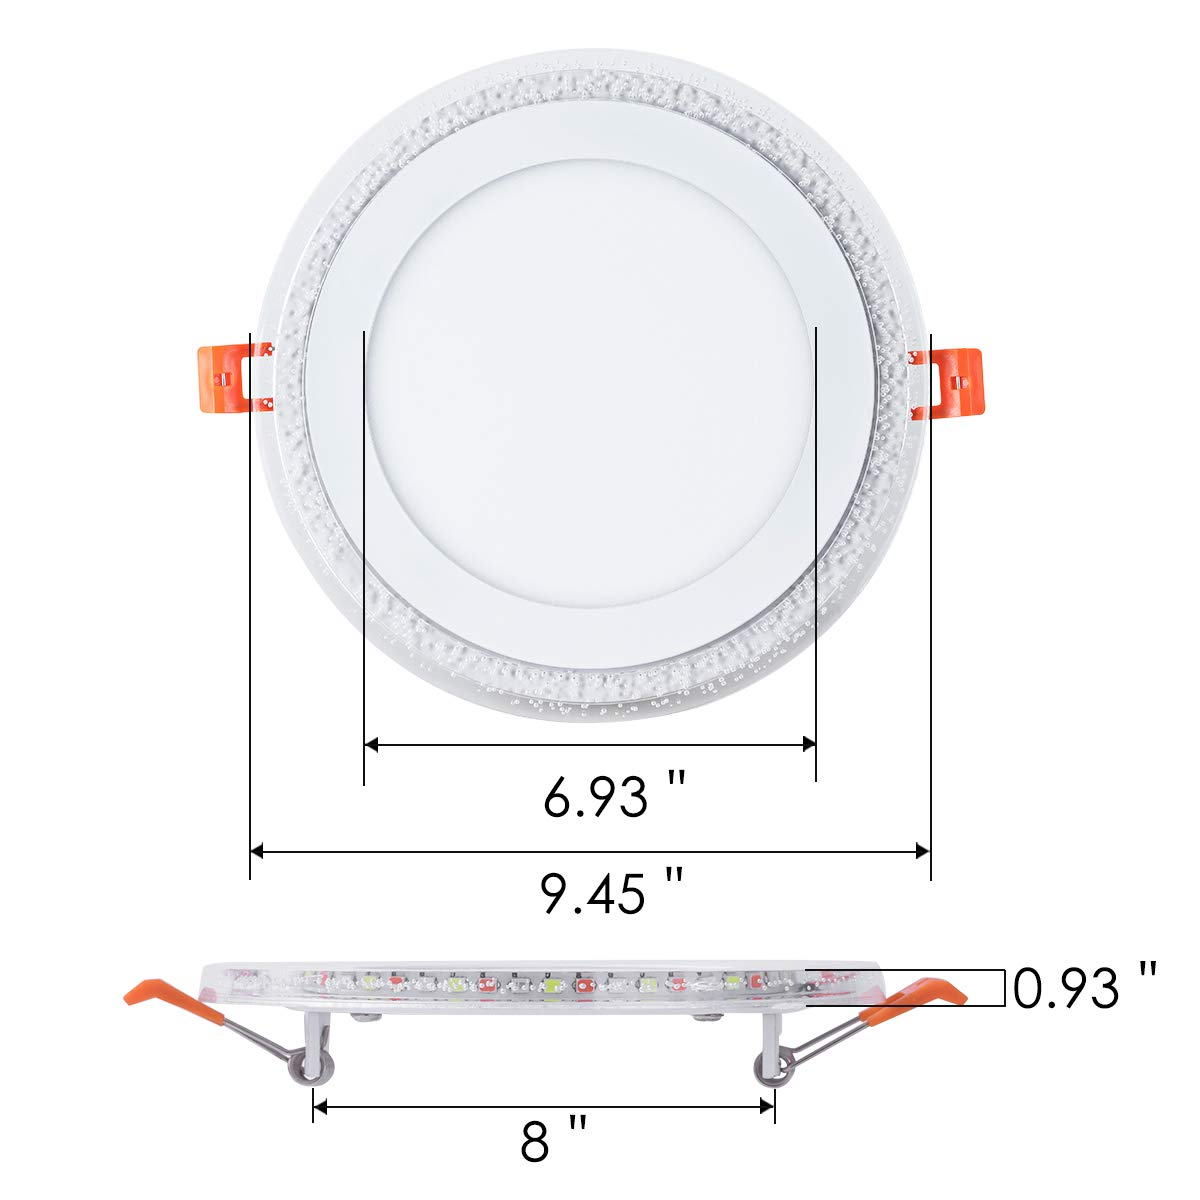 8 Inch Remote Control RGB LED Color Changing Recessed Ceiling Round Panel Lights, Cool White 6500k+ RGB Ultra Thin with Driver, AC100-240V 18+6W, Office, Home, Commercial Lighting Pack of 5 by zhaosheng (Image #5)